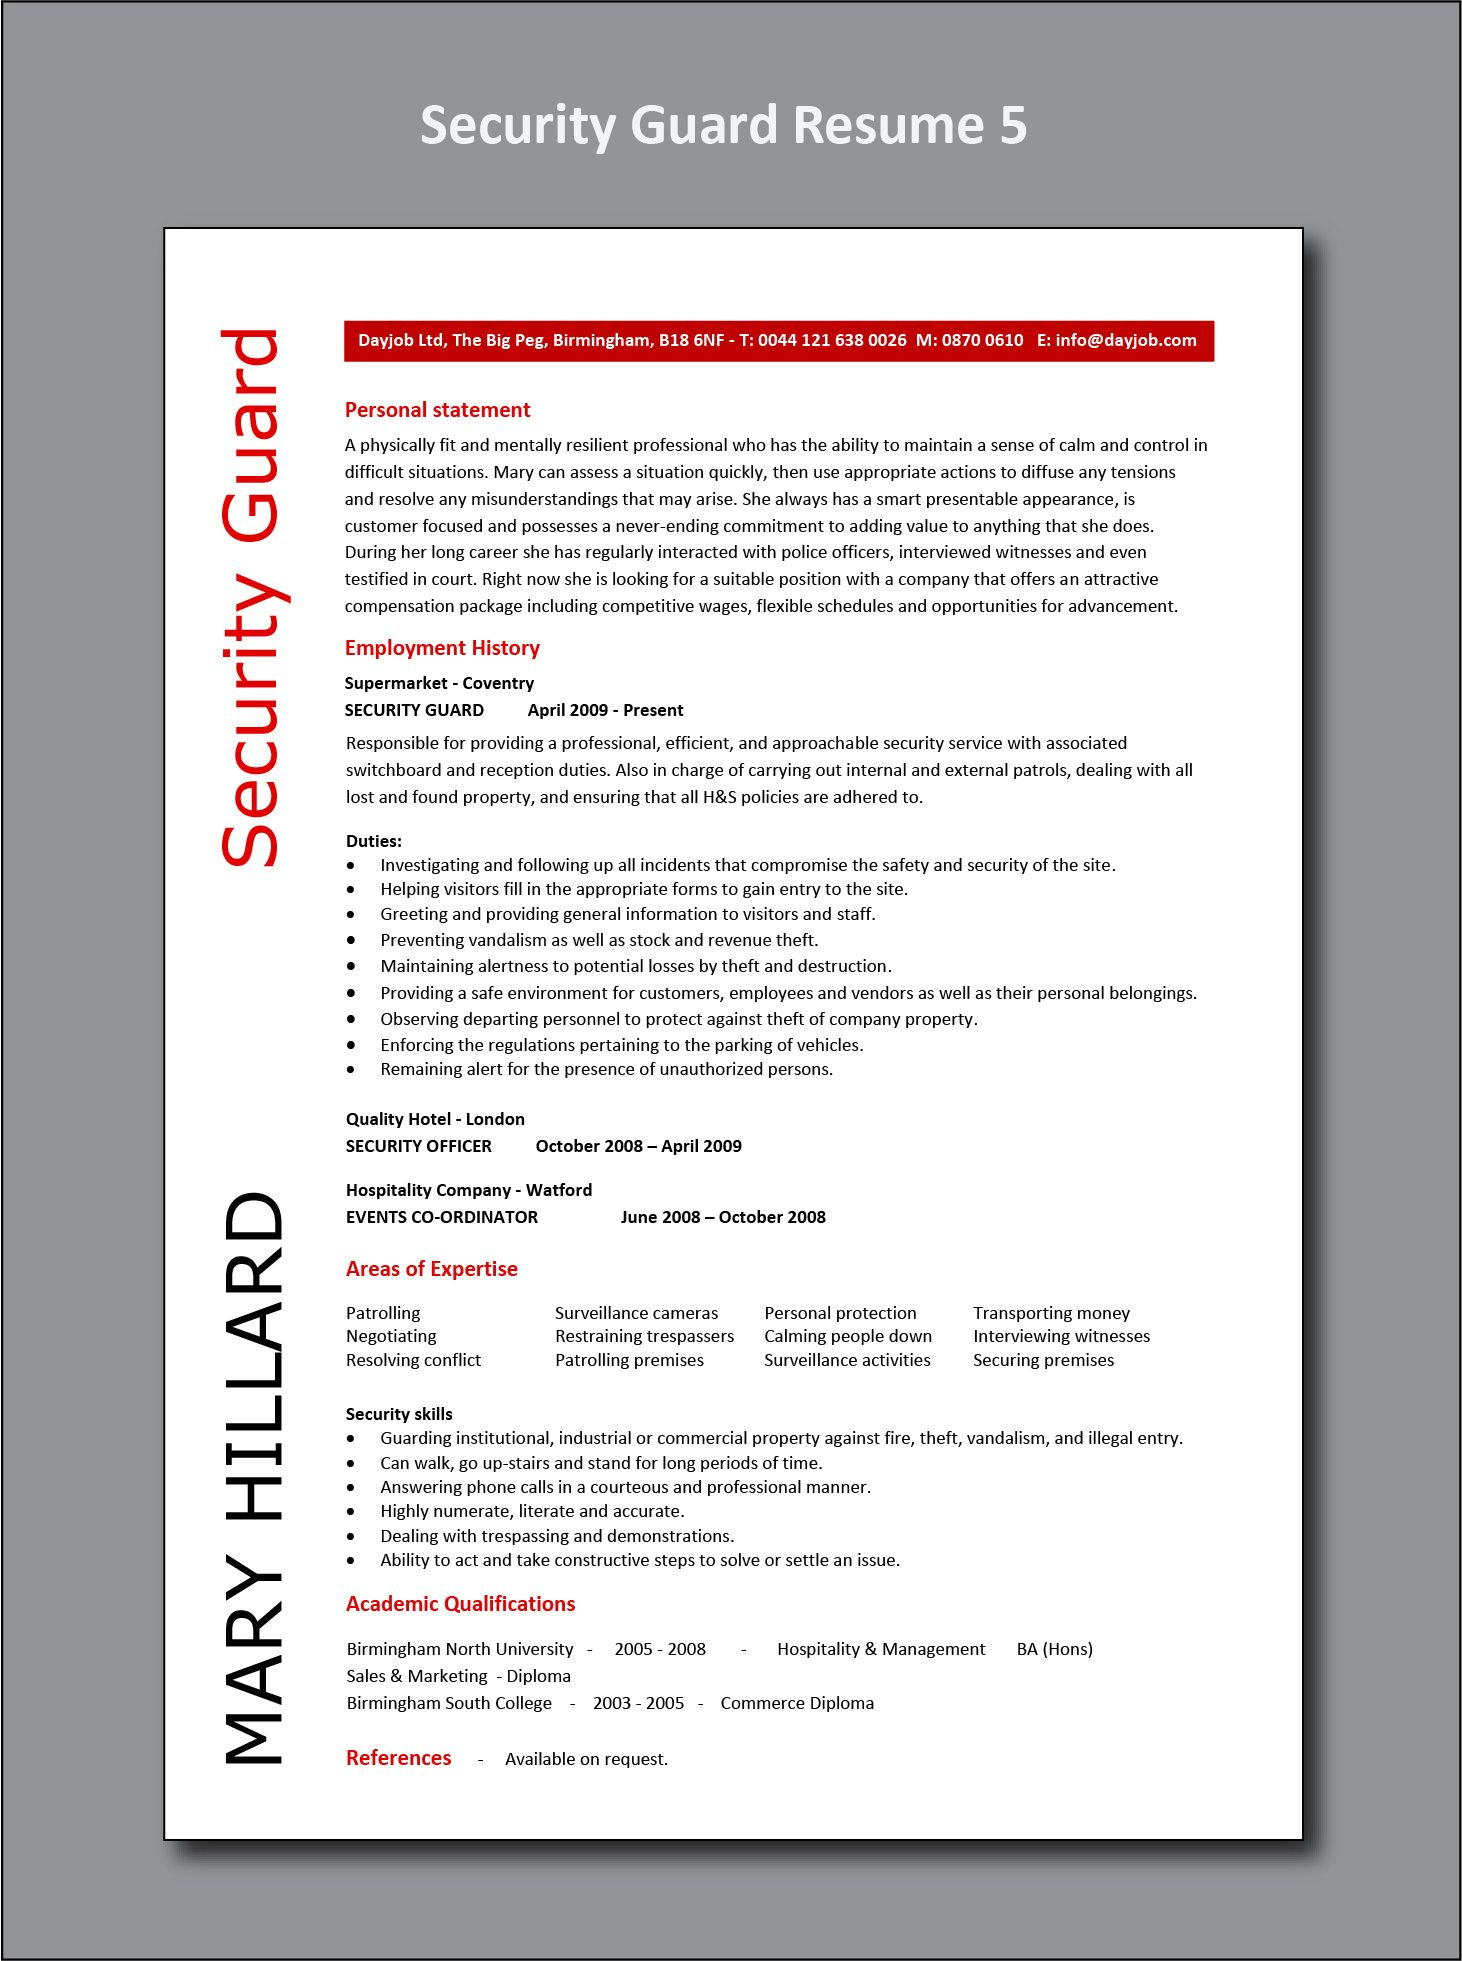 Security Guard Resume 5 Example Cv Sample Officer